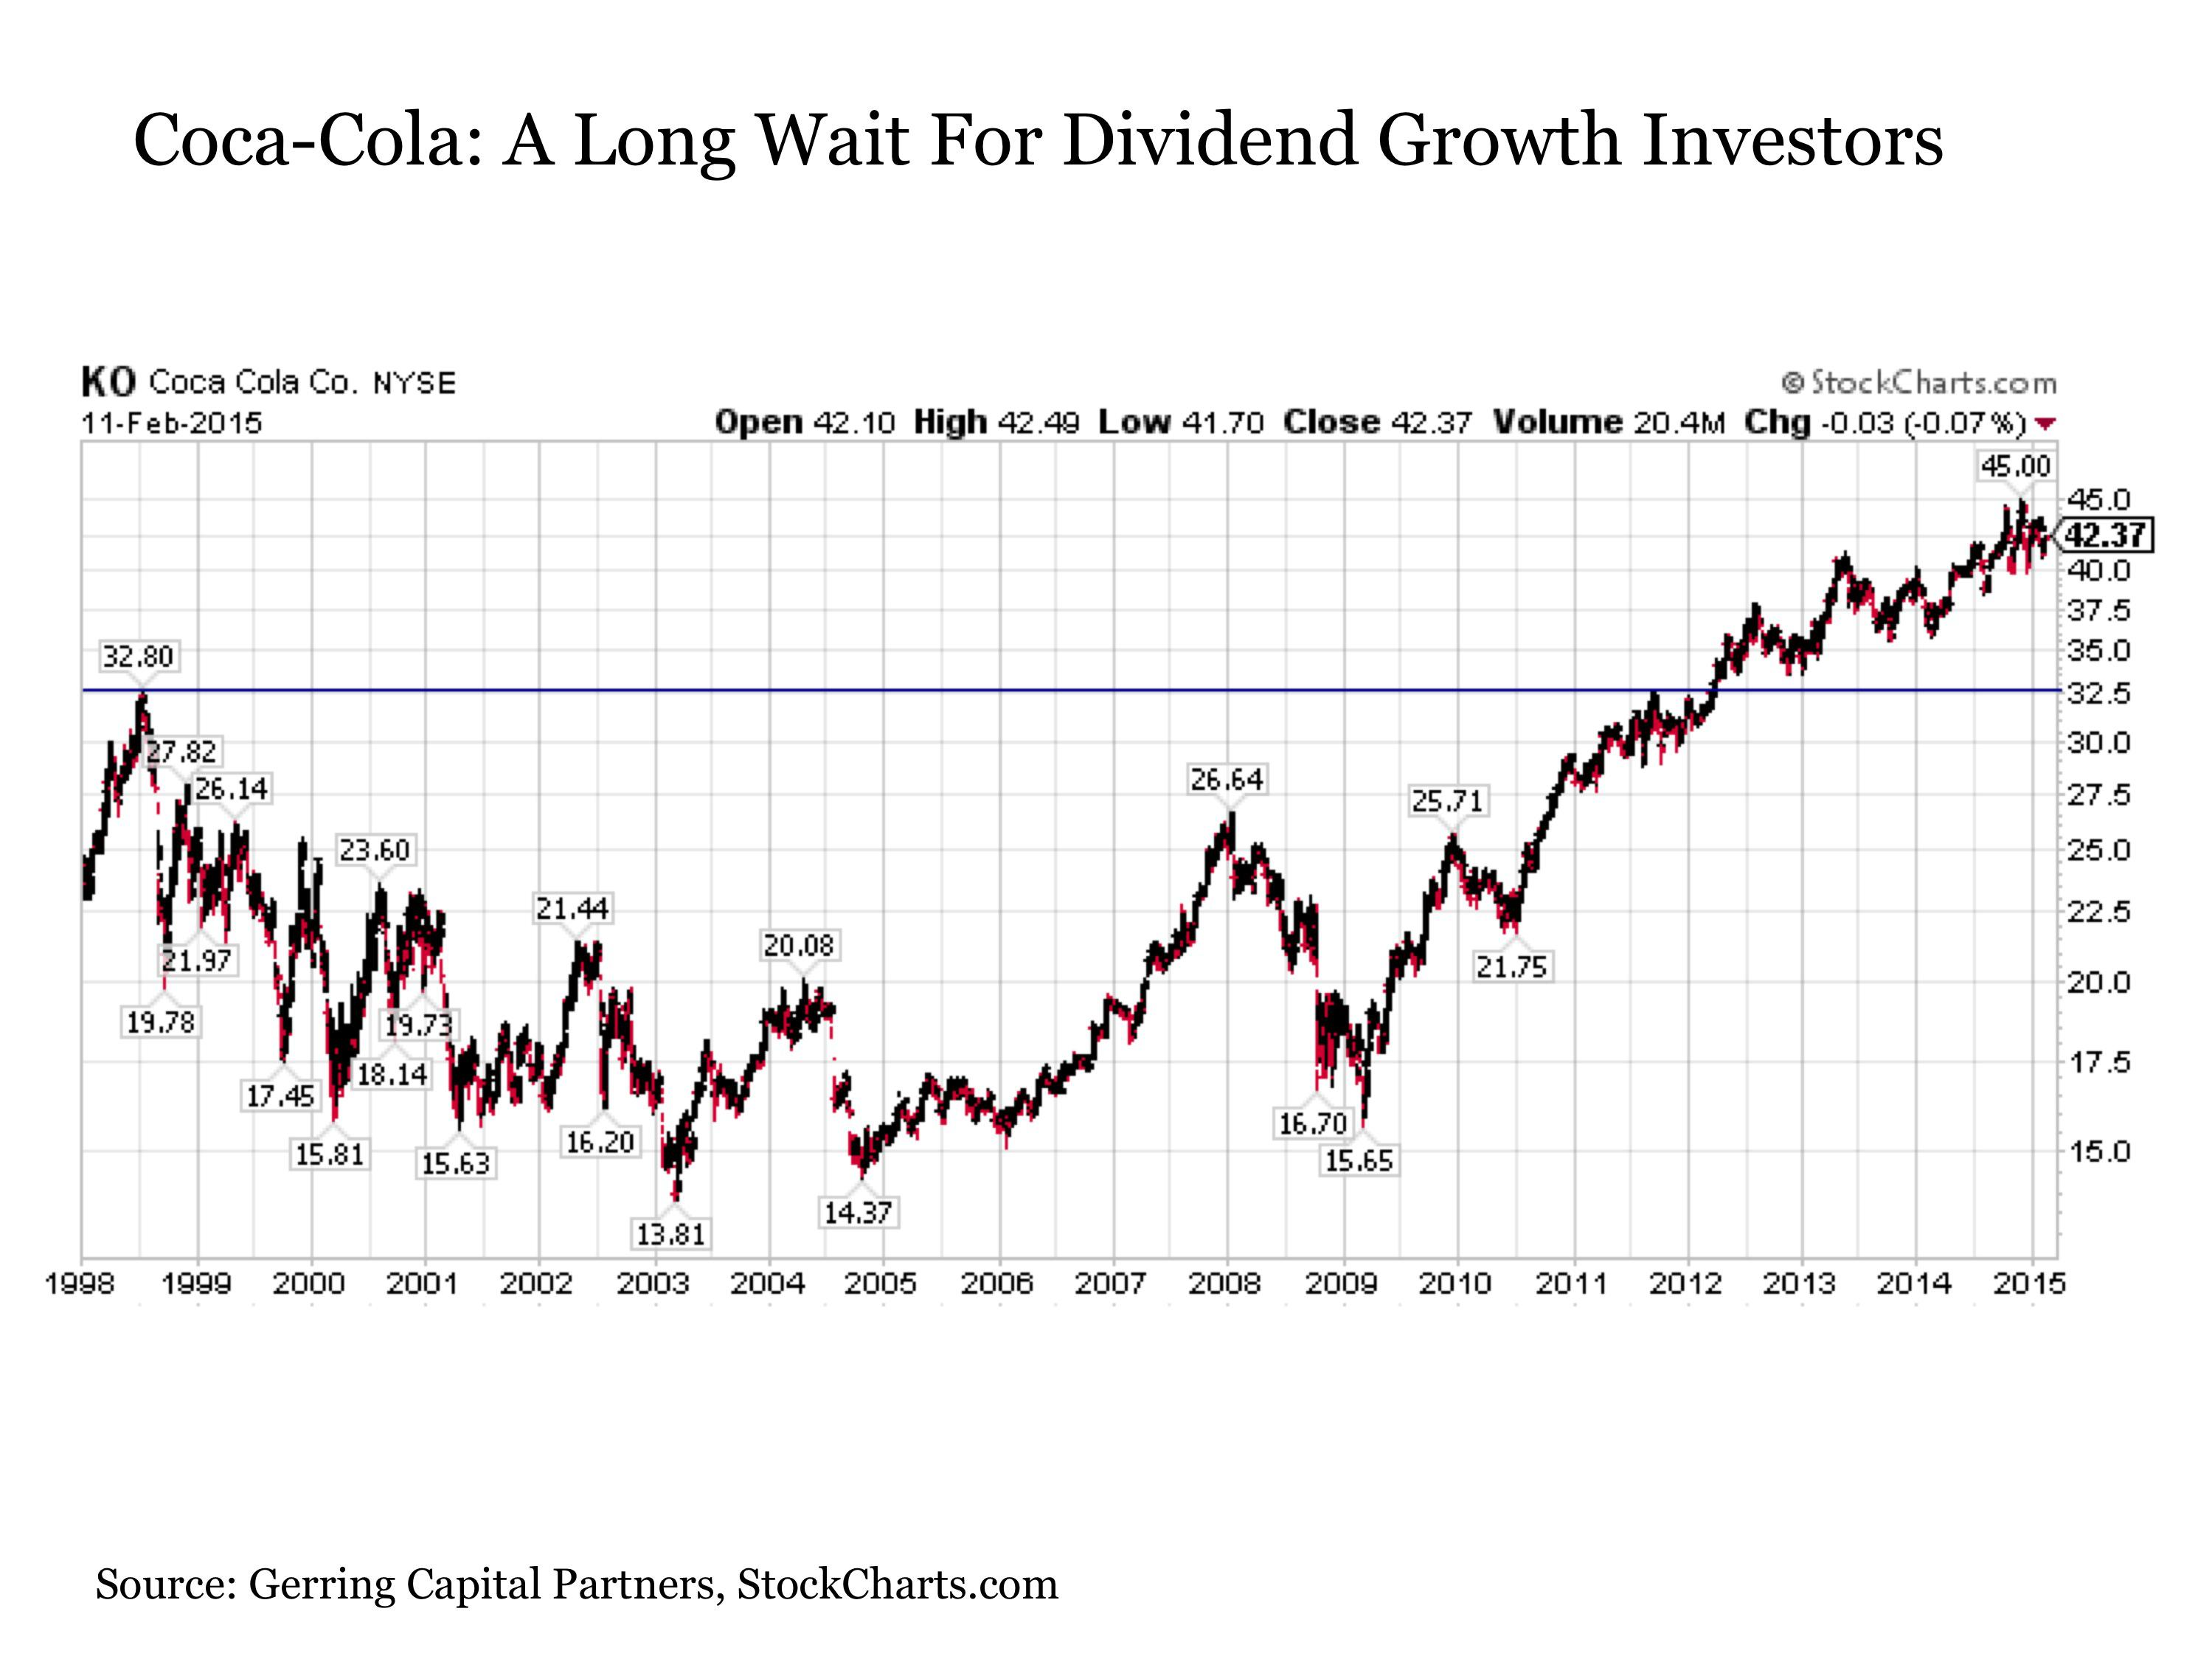 coca cola breakeven If we consider the 10 year treasury rate as a reasonable opportunity cost instead of coca-cola , then we can add 1/2% per quarter to compensate for our cost of capital going into 2013 the break-even point (breakeven stop), on the 200 shares, moves up to $3769 ($3750 plus one quarters interest of 1/2 percent), and will continue to move up each quarter.